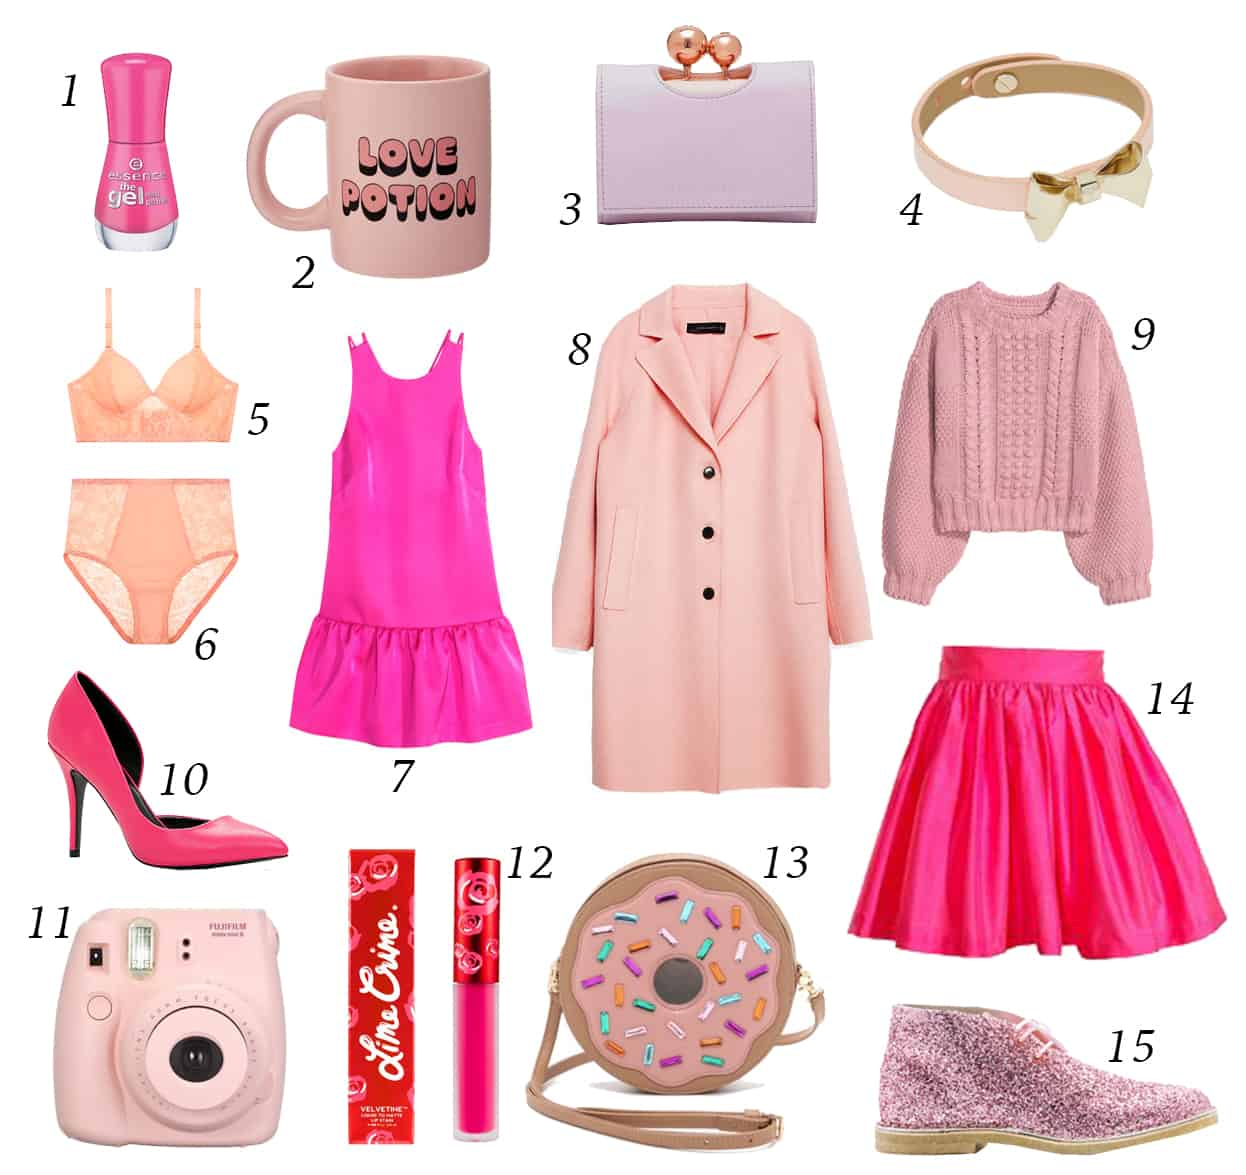 Pink Overload Our Guide To Dressing For Valentine S Day And Beyond Shedoesthecity Fashion